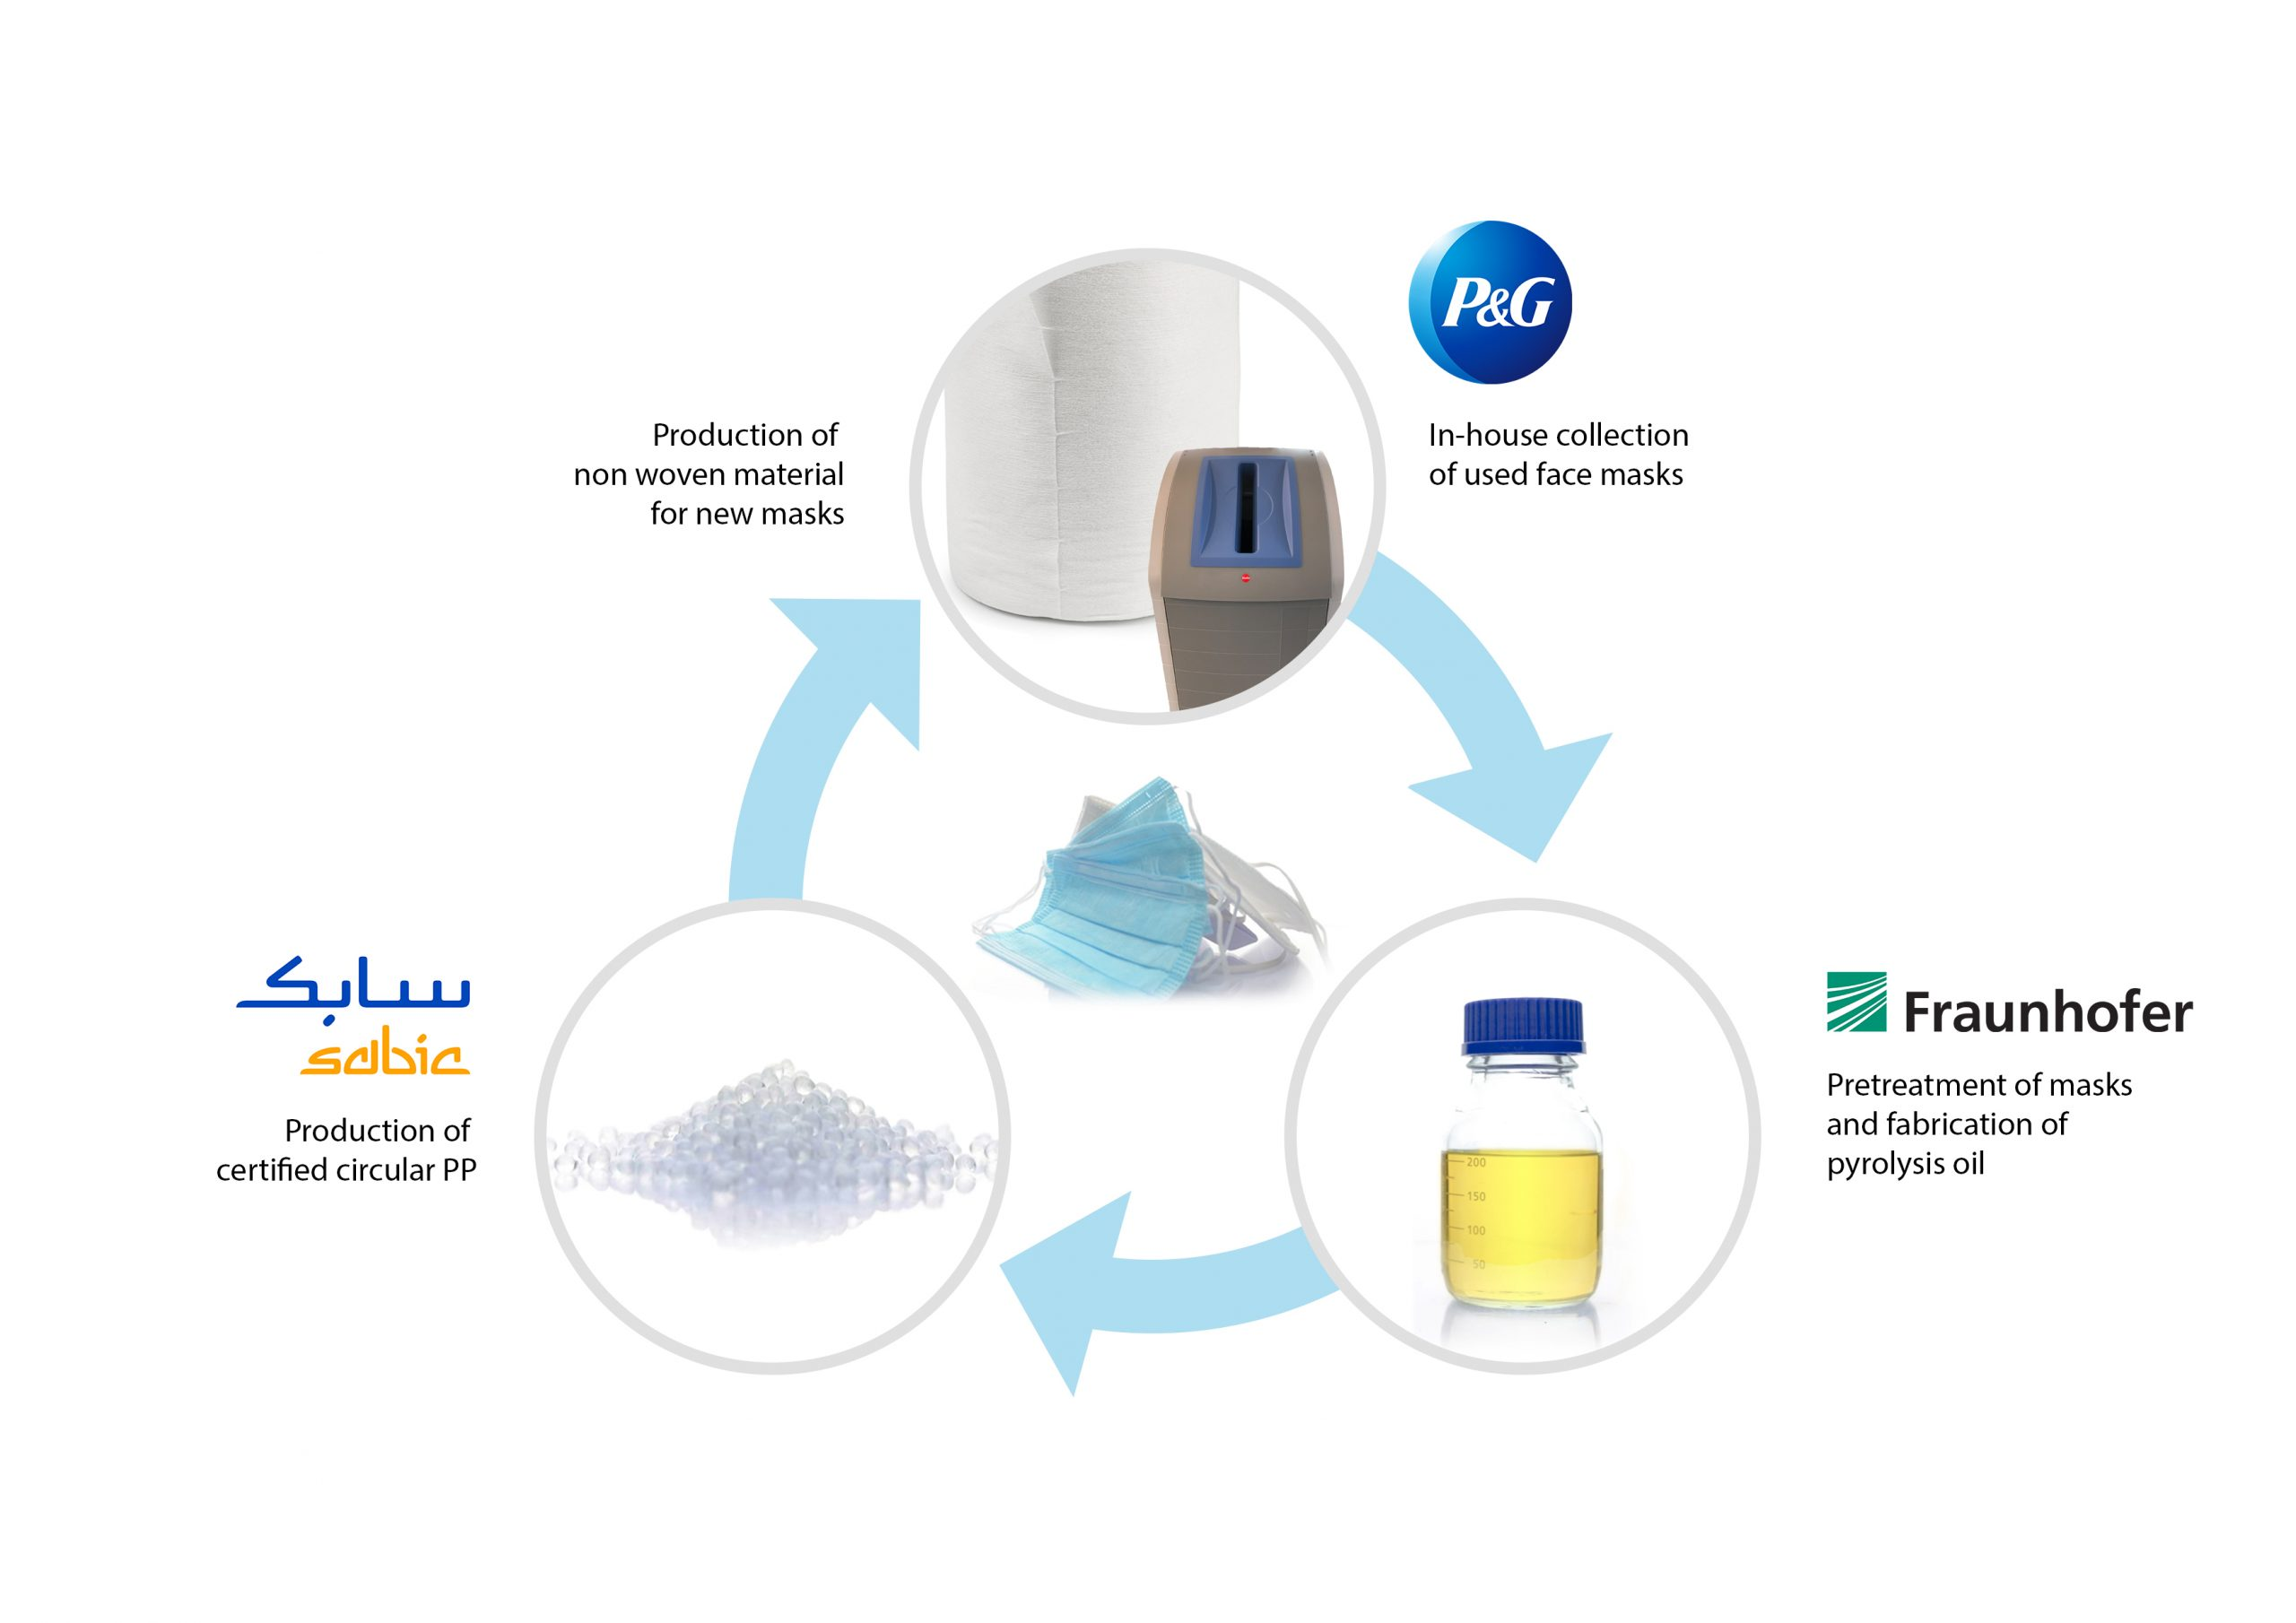 Fraunhofer, SABIC, and Procter & Gamble join forces in closed-loop recycling pilot project for single-use facemasks